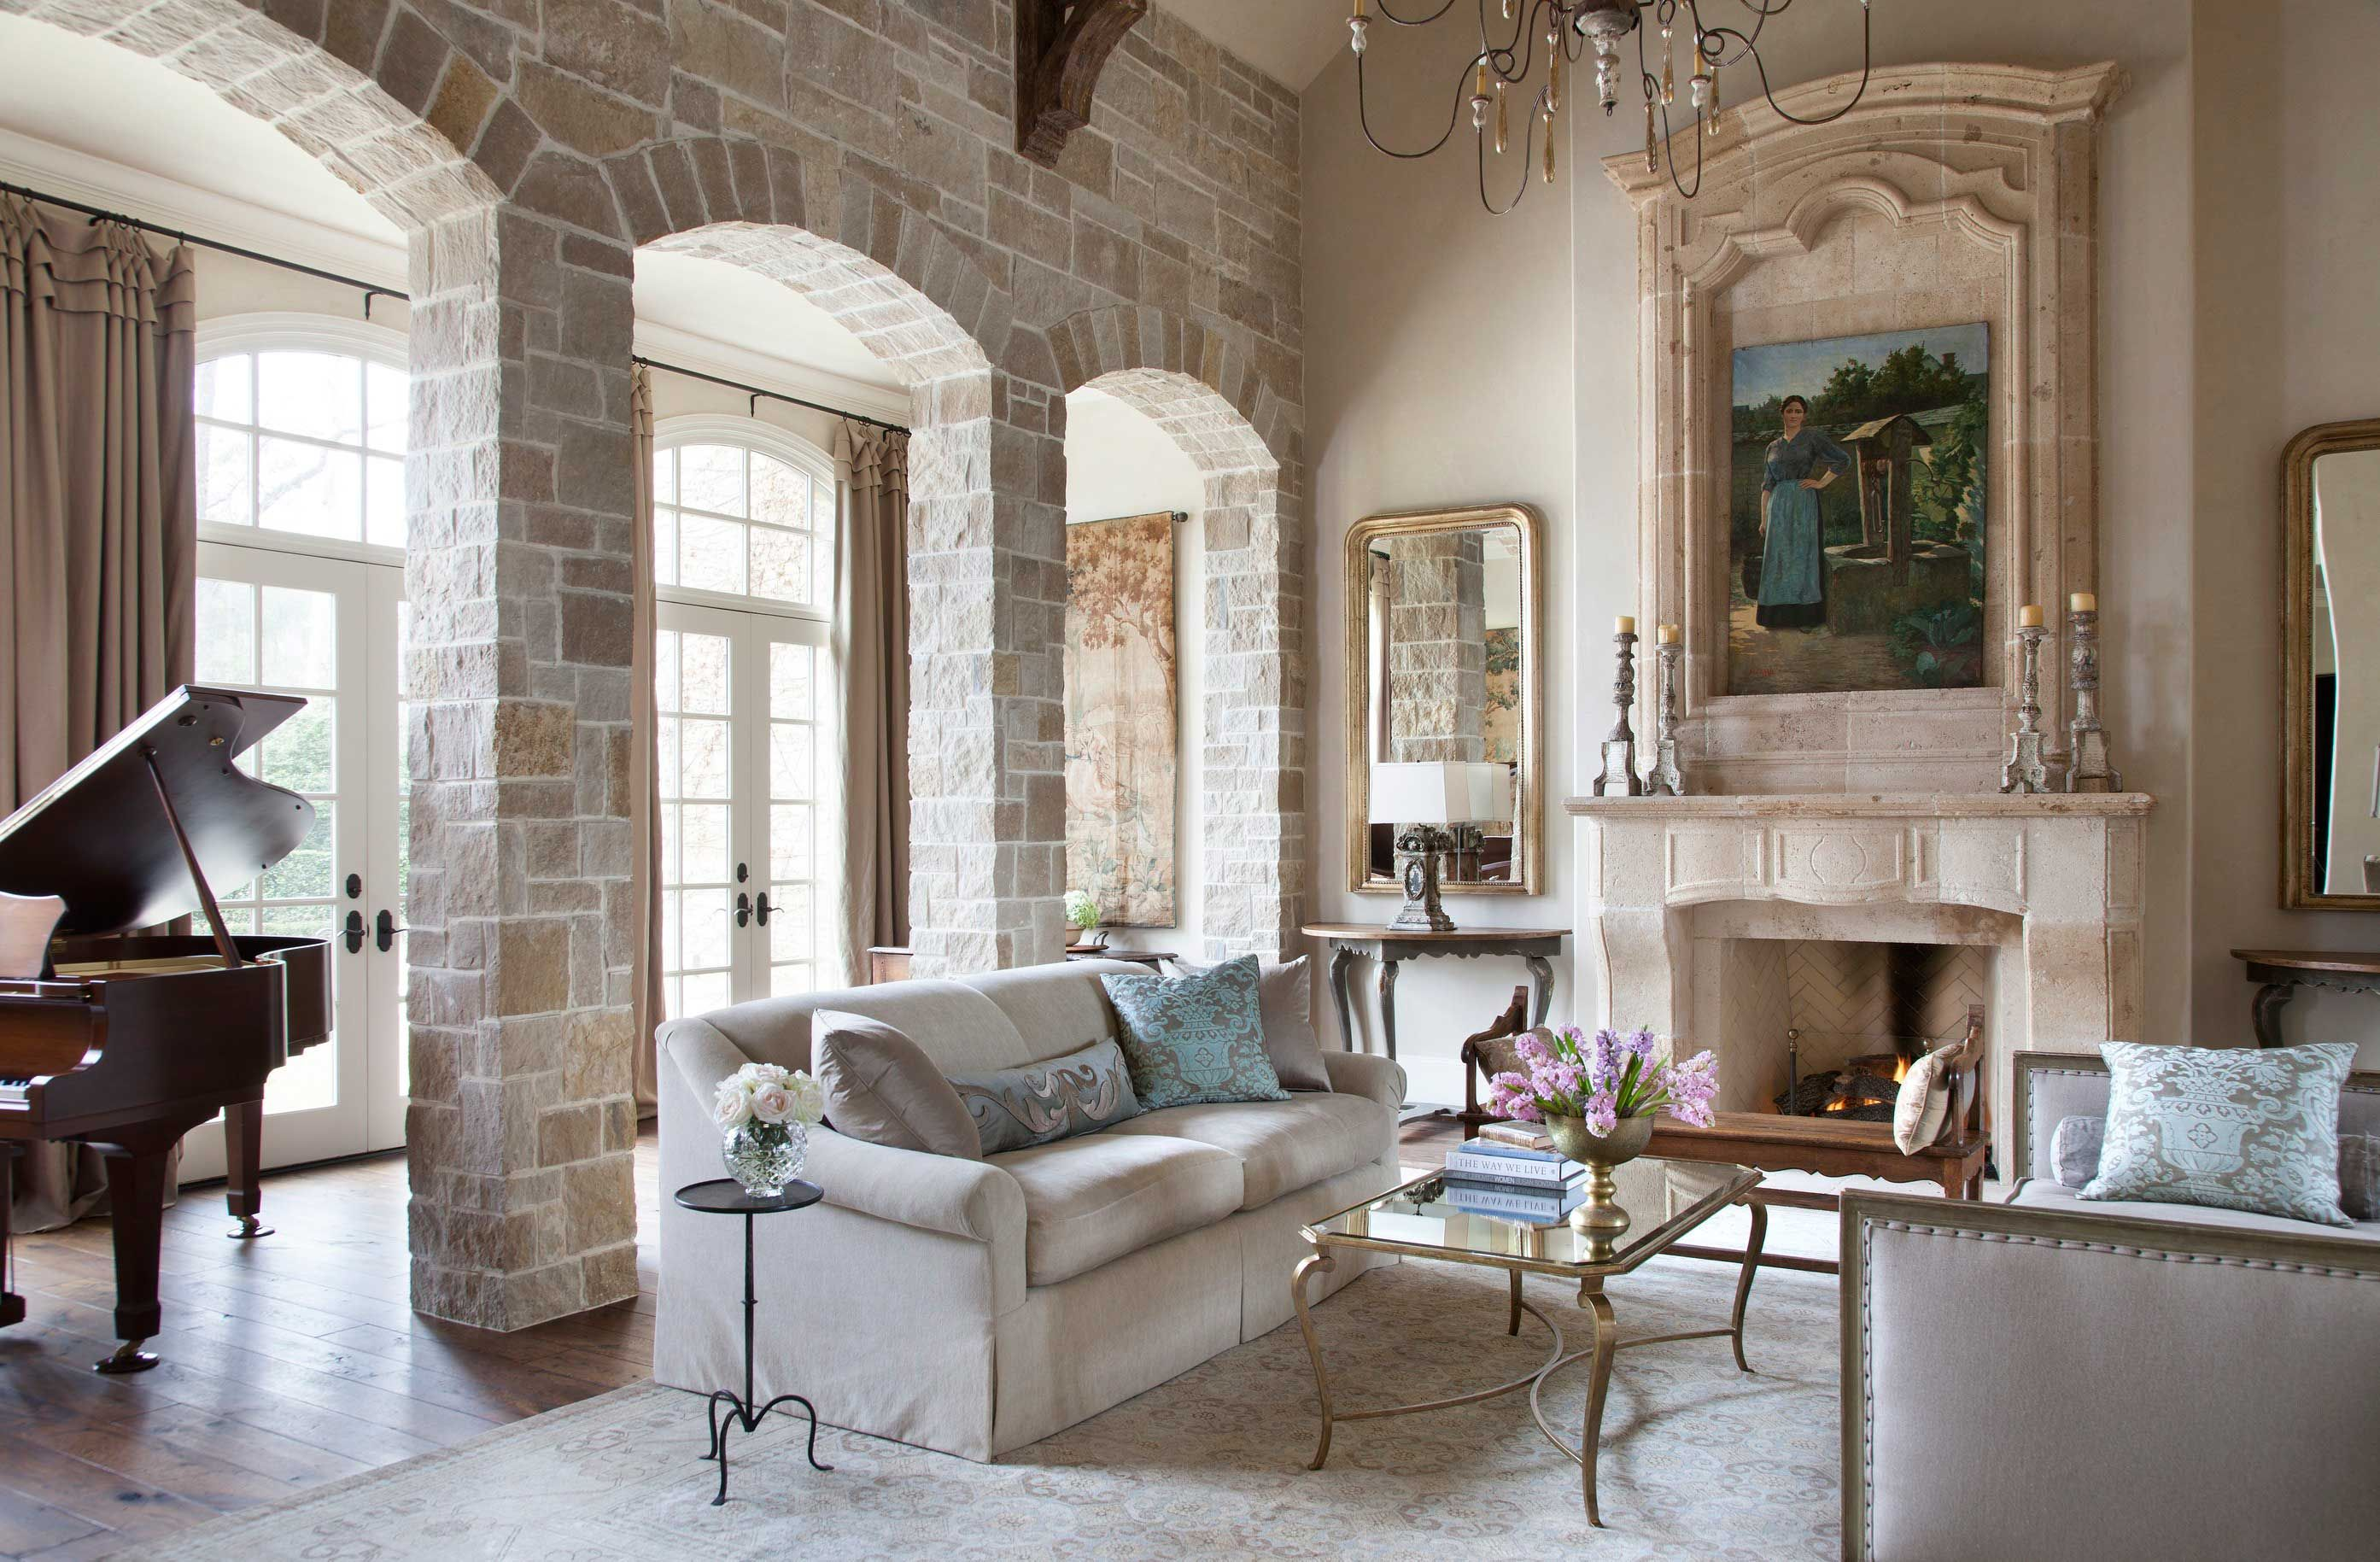 appealing french country style living room | Houston Home with Country French Appeal | French country ...